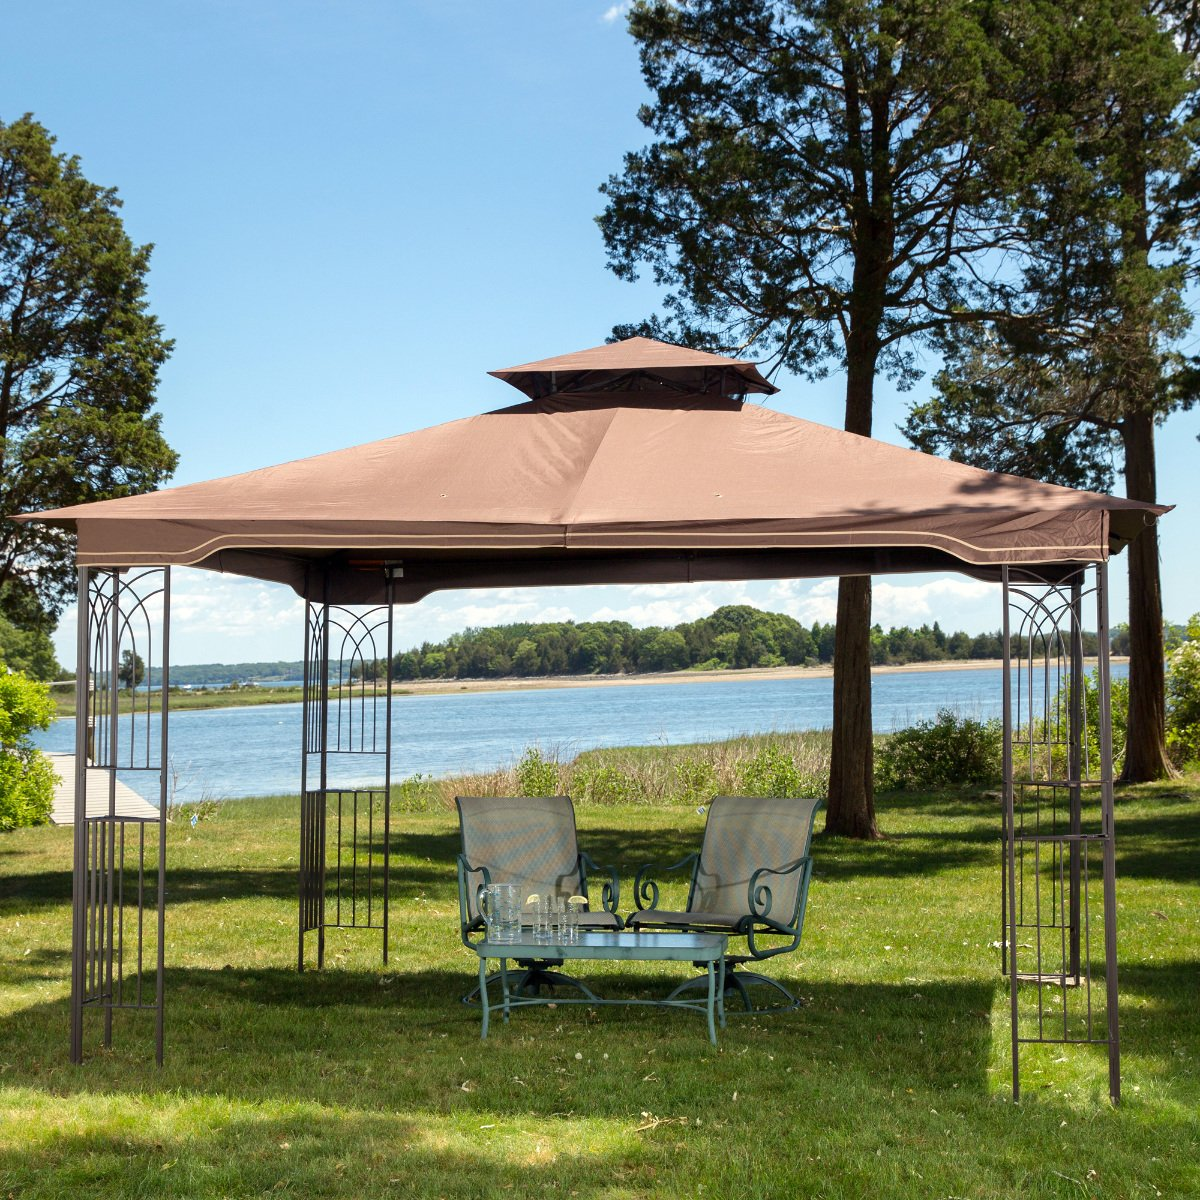 Amazon.com : 10 X 12 Regency II Patio Gazebo With Mosquito Netting : Patio,  Lawn U0026 Garden